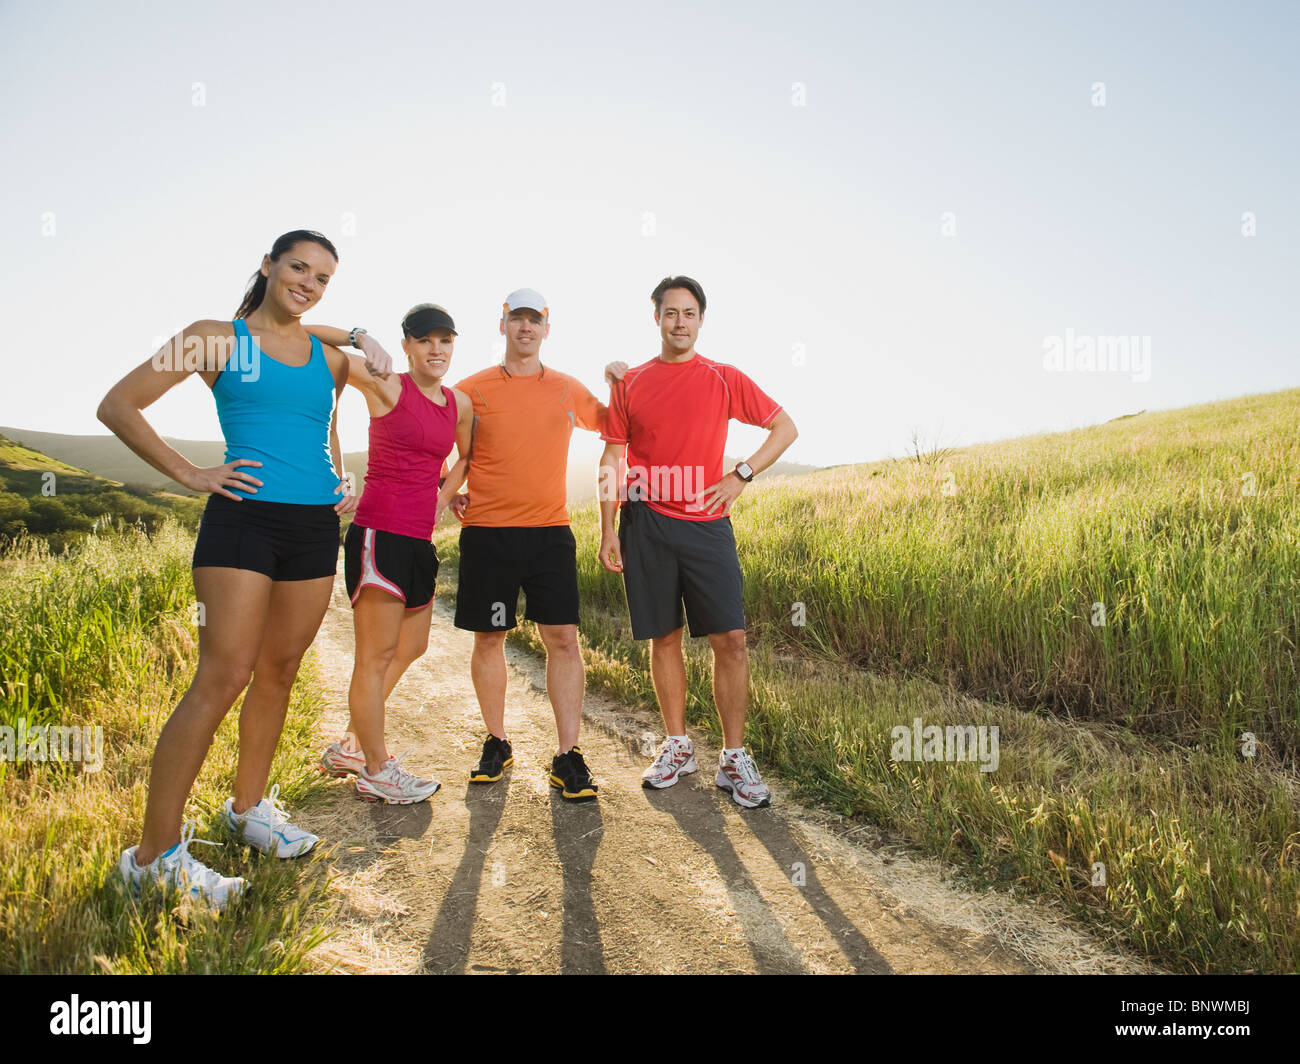 Trail runners taking a break - Stock Image